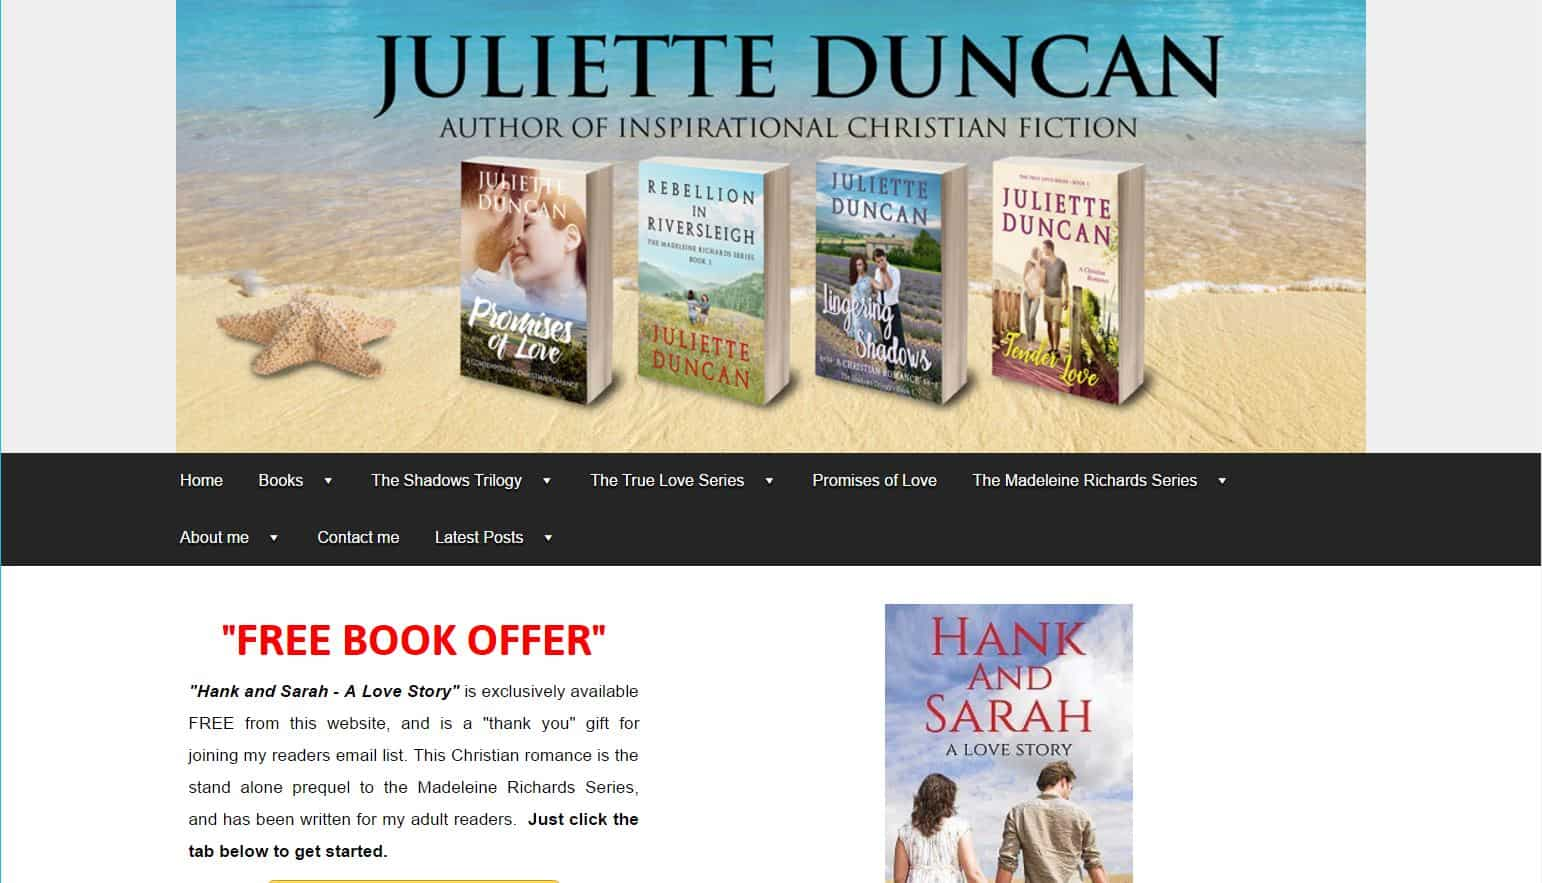 Juliette - Author website